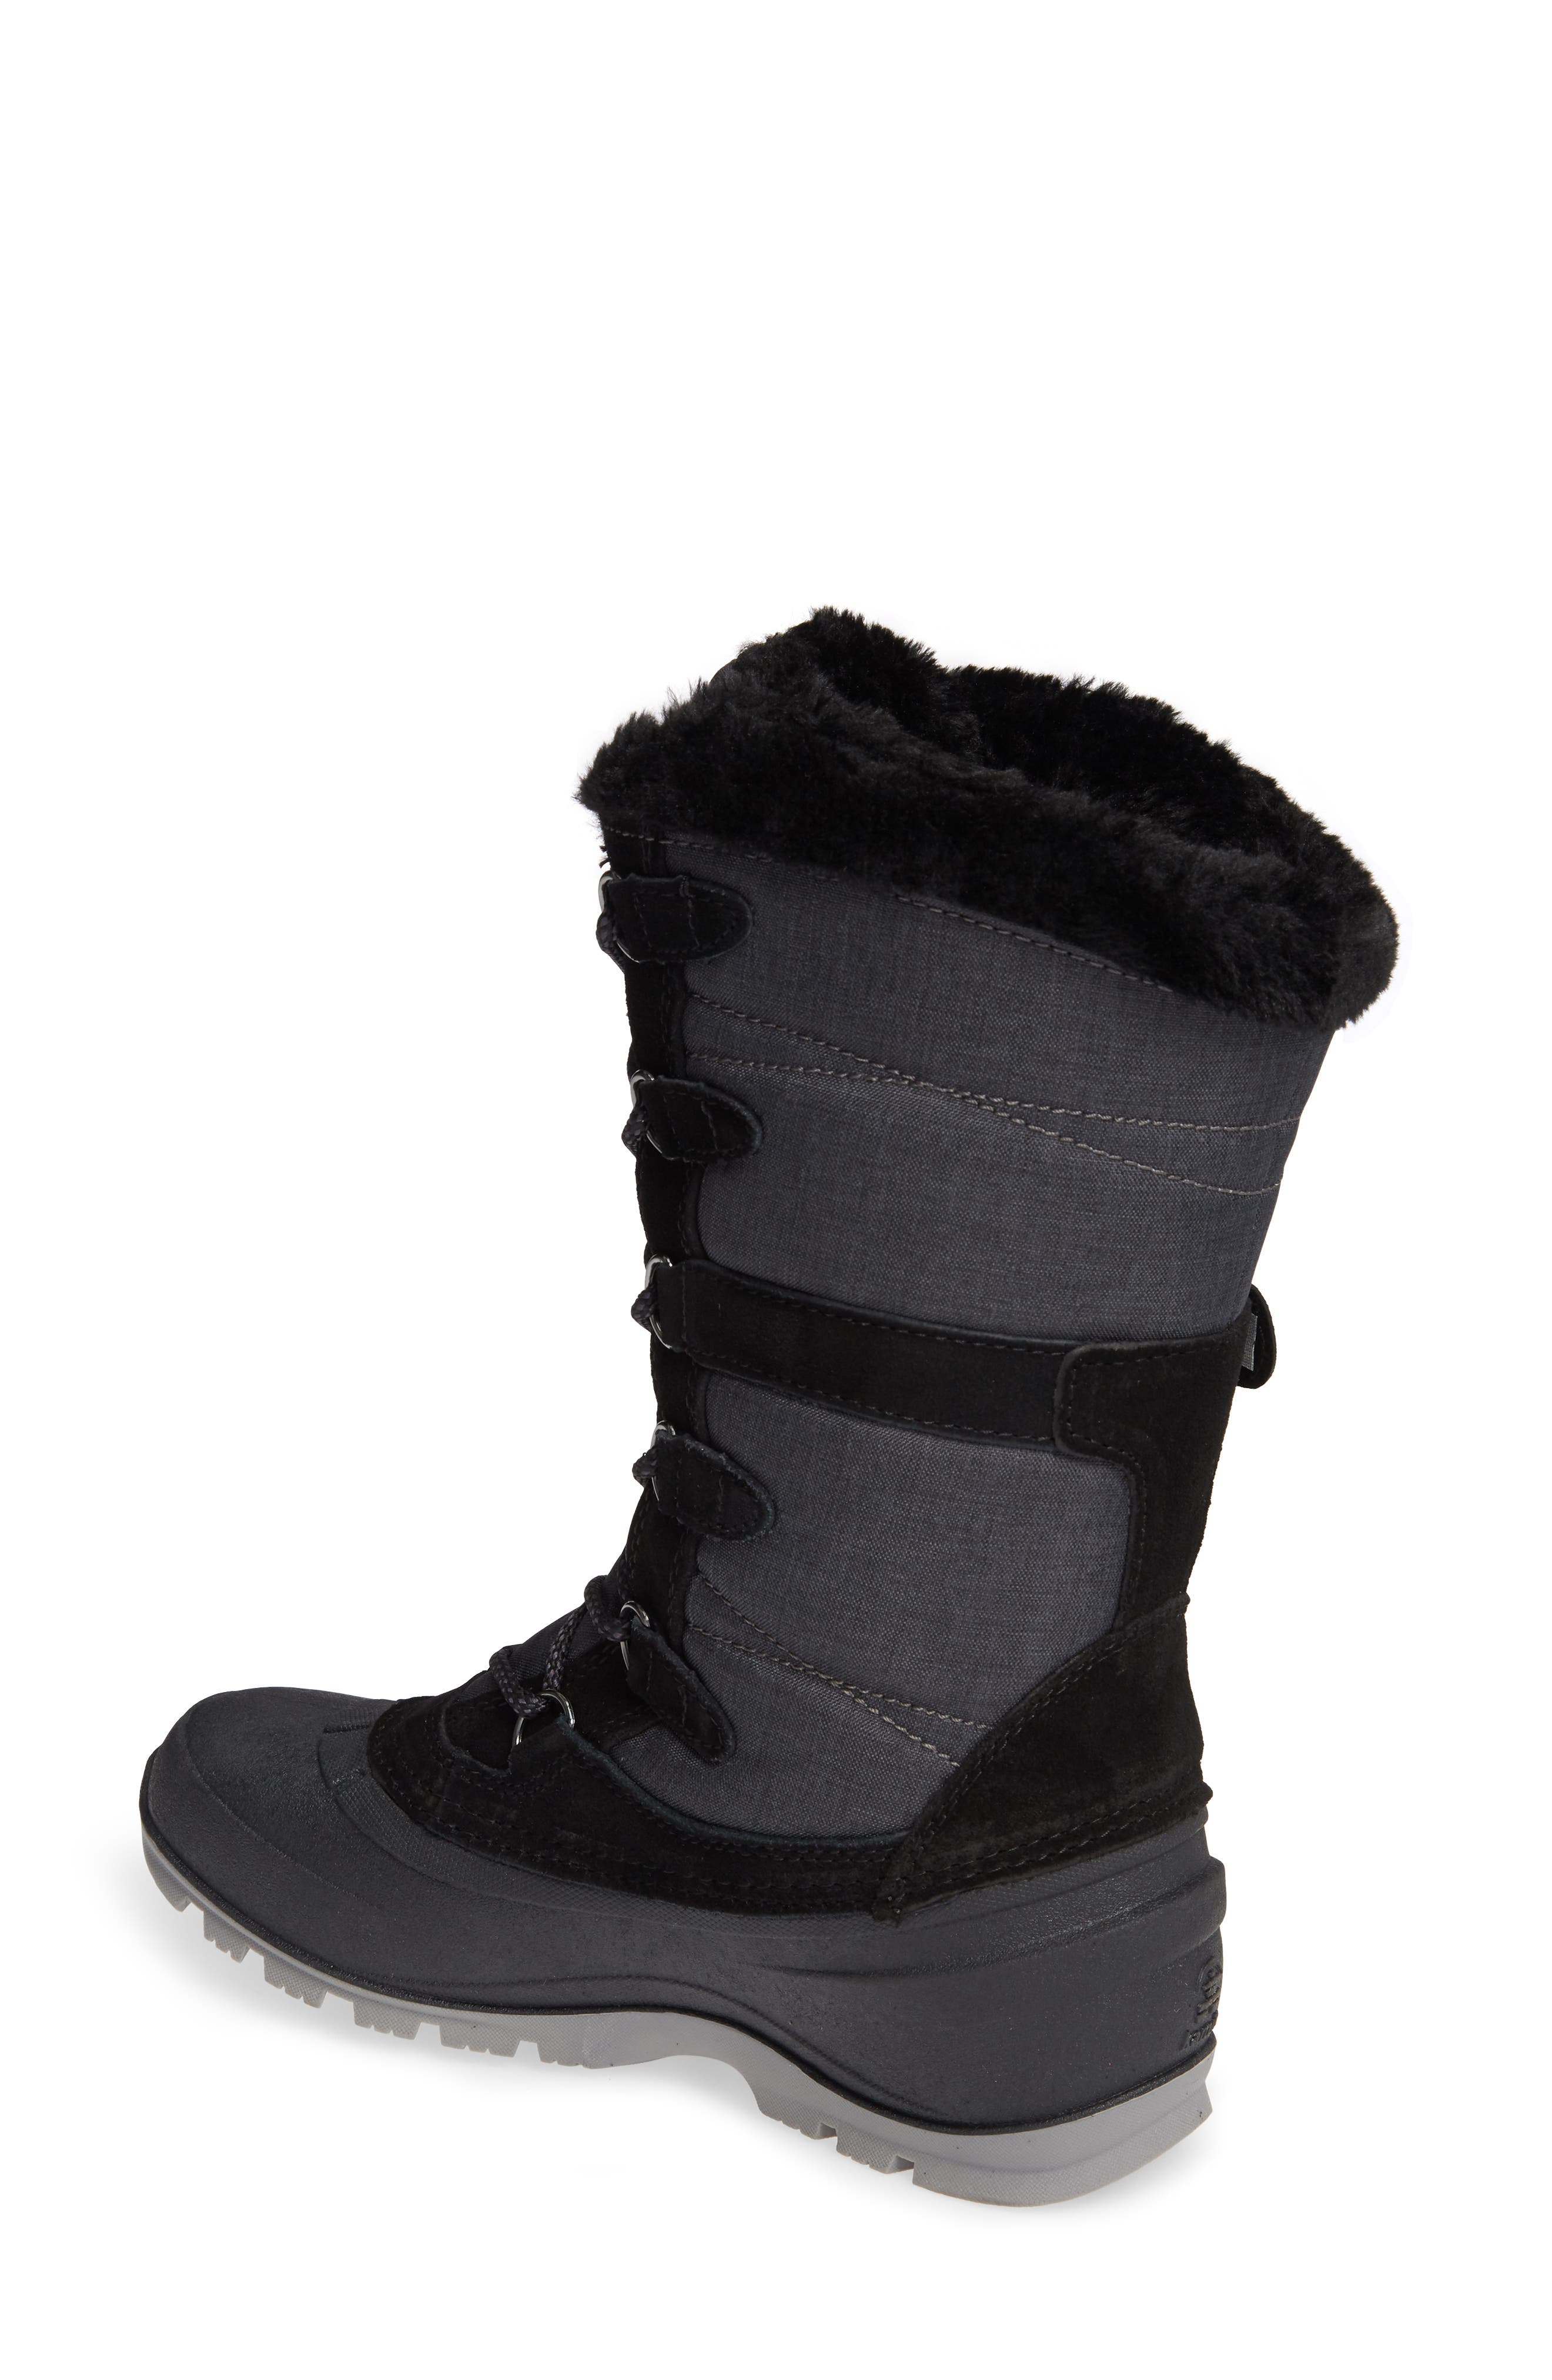 KAMIK, Snovalley2 Waterproof Thinsulate<sup>®</sup>-Insulated Snow Boot, Alternate thumbnail 2, color, 001